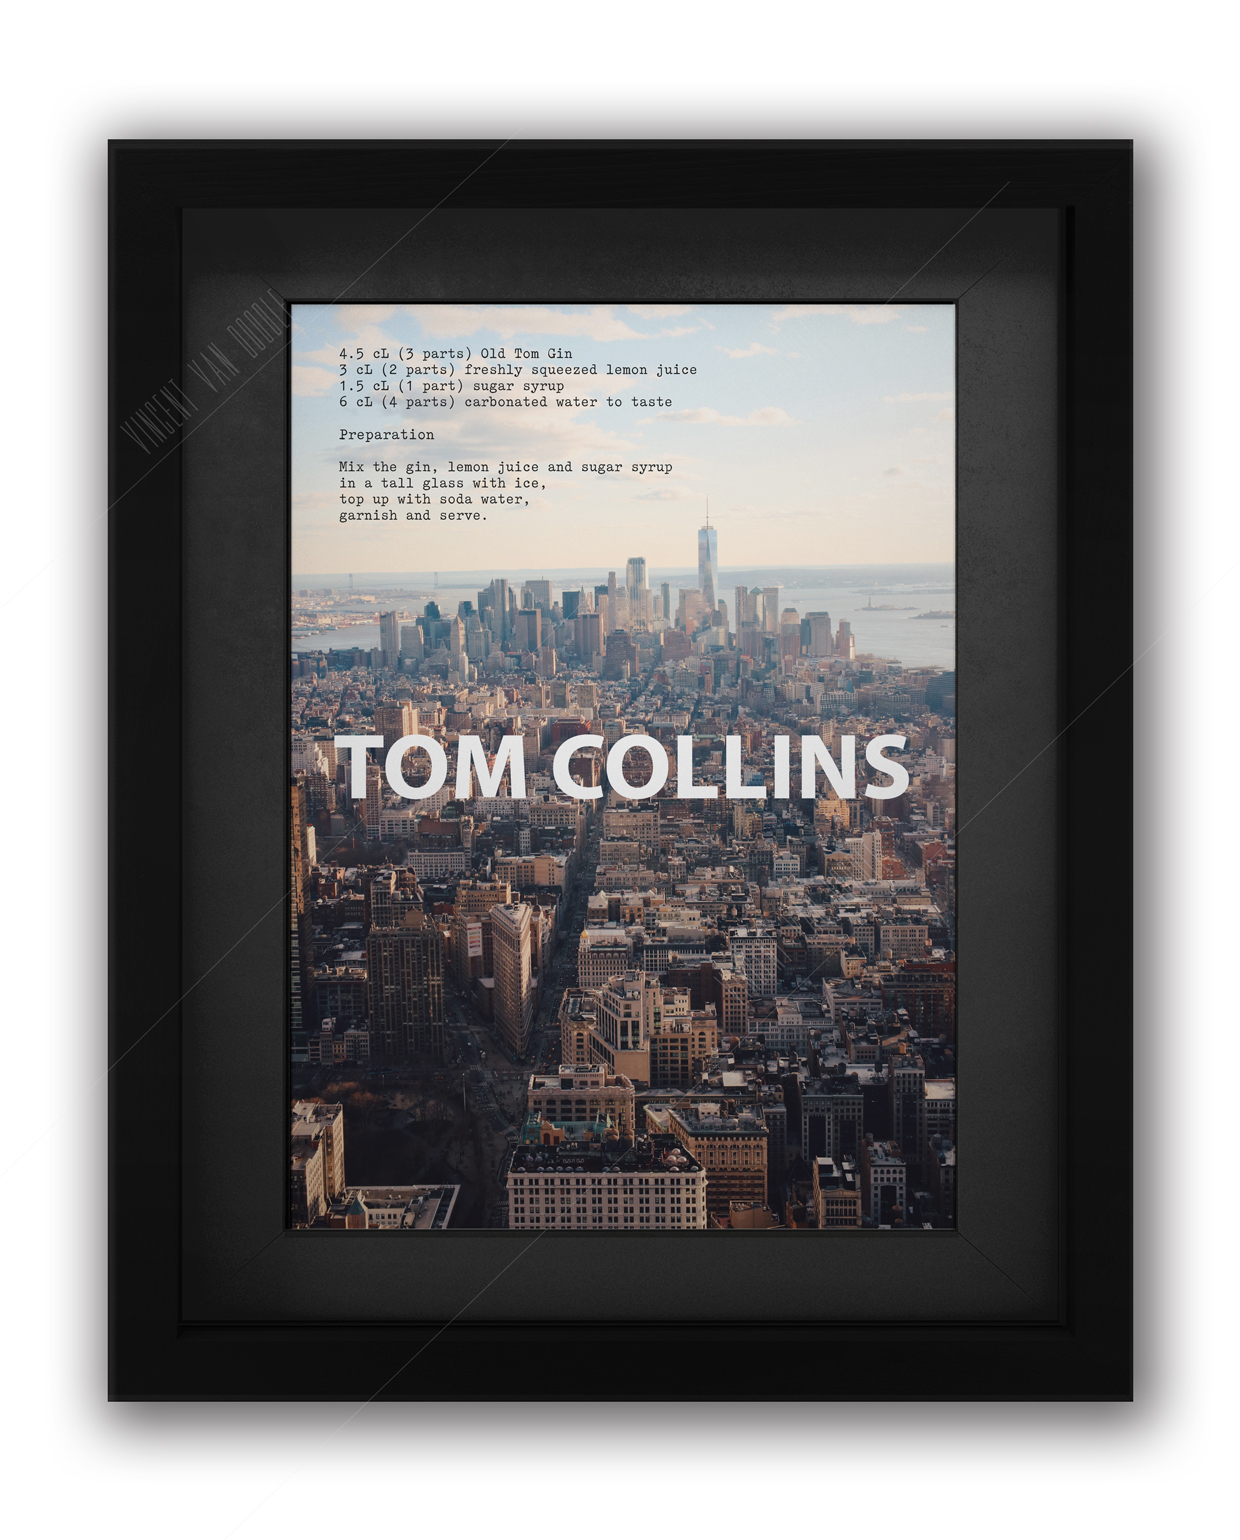 Tom Collins Cocktail Recipe Print Black Frame